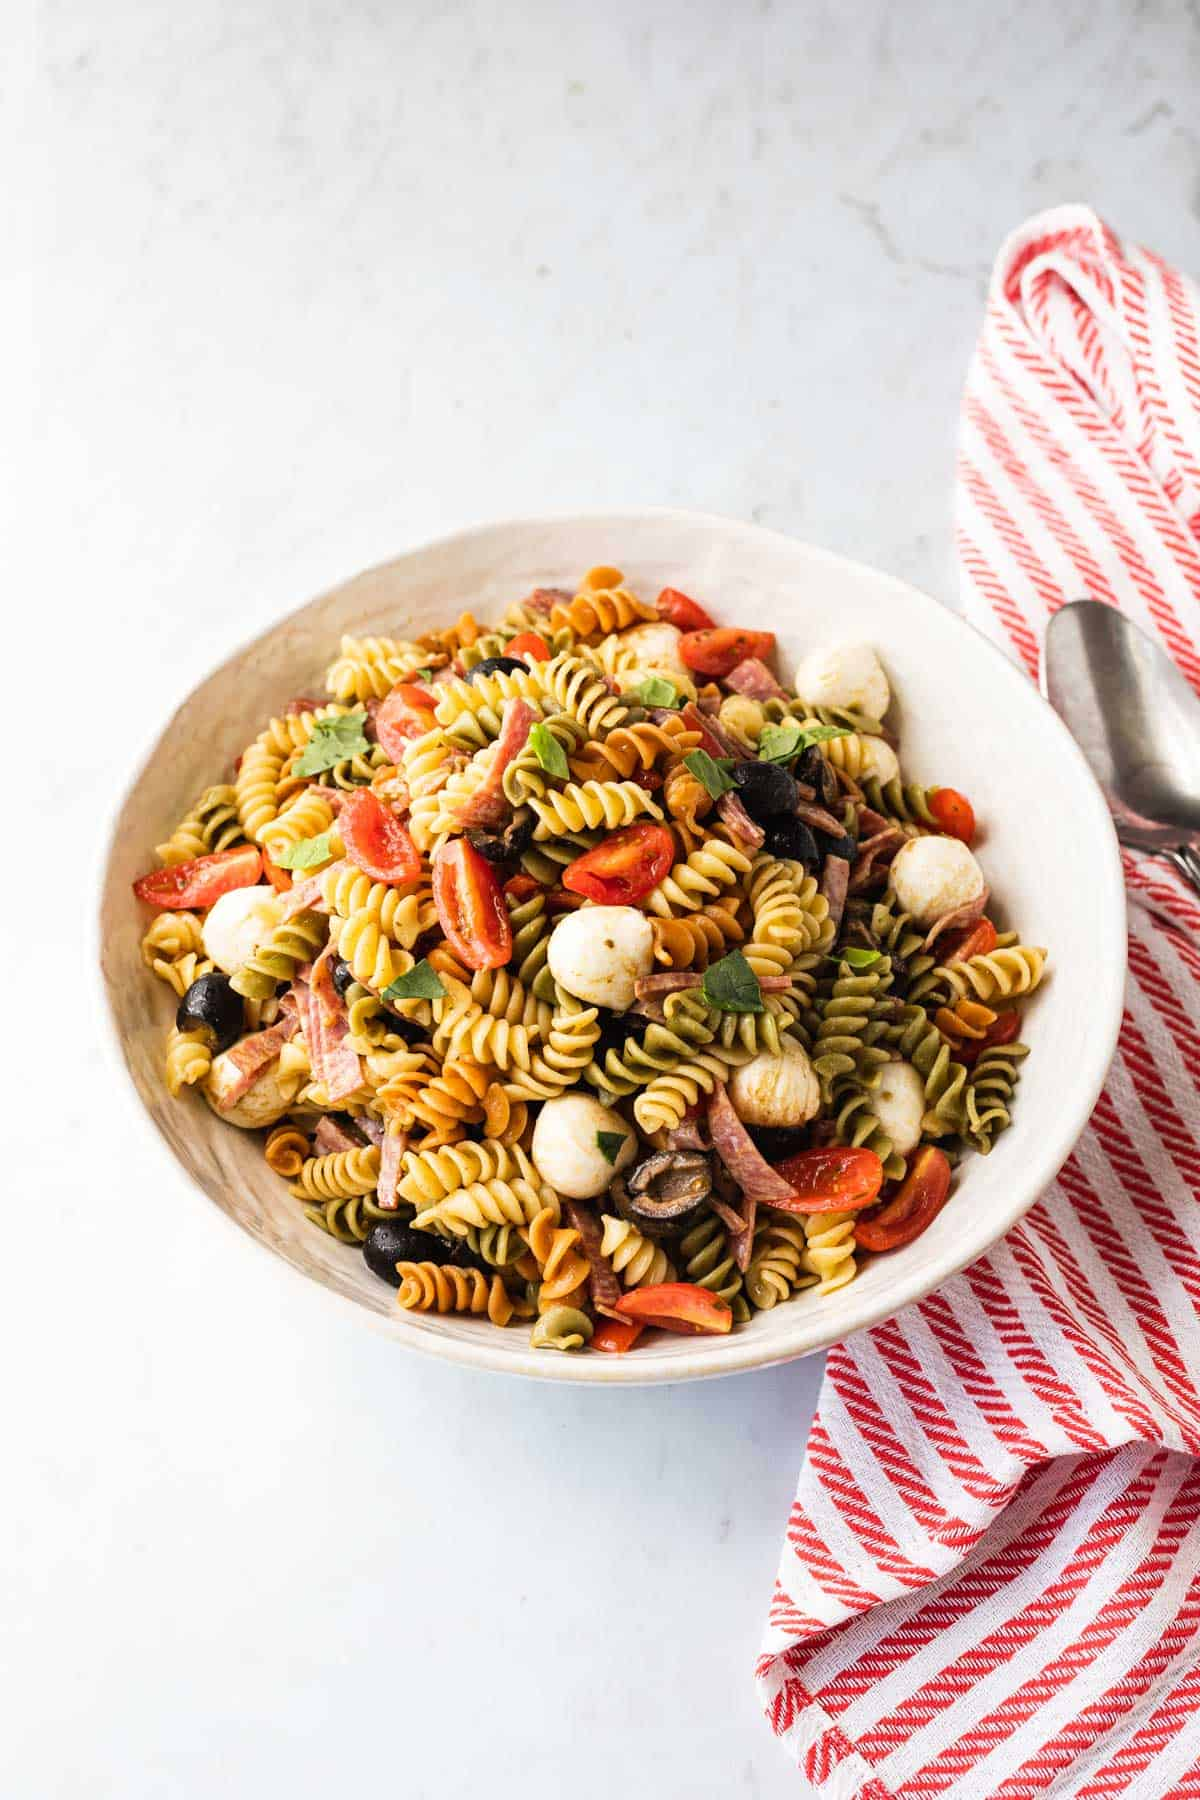 white bowl with a pasta salad in it, red and white striped towel on right side